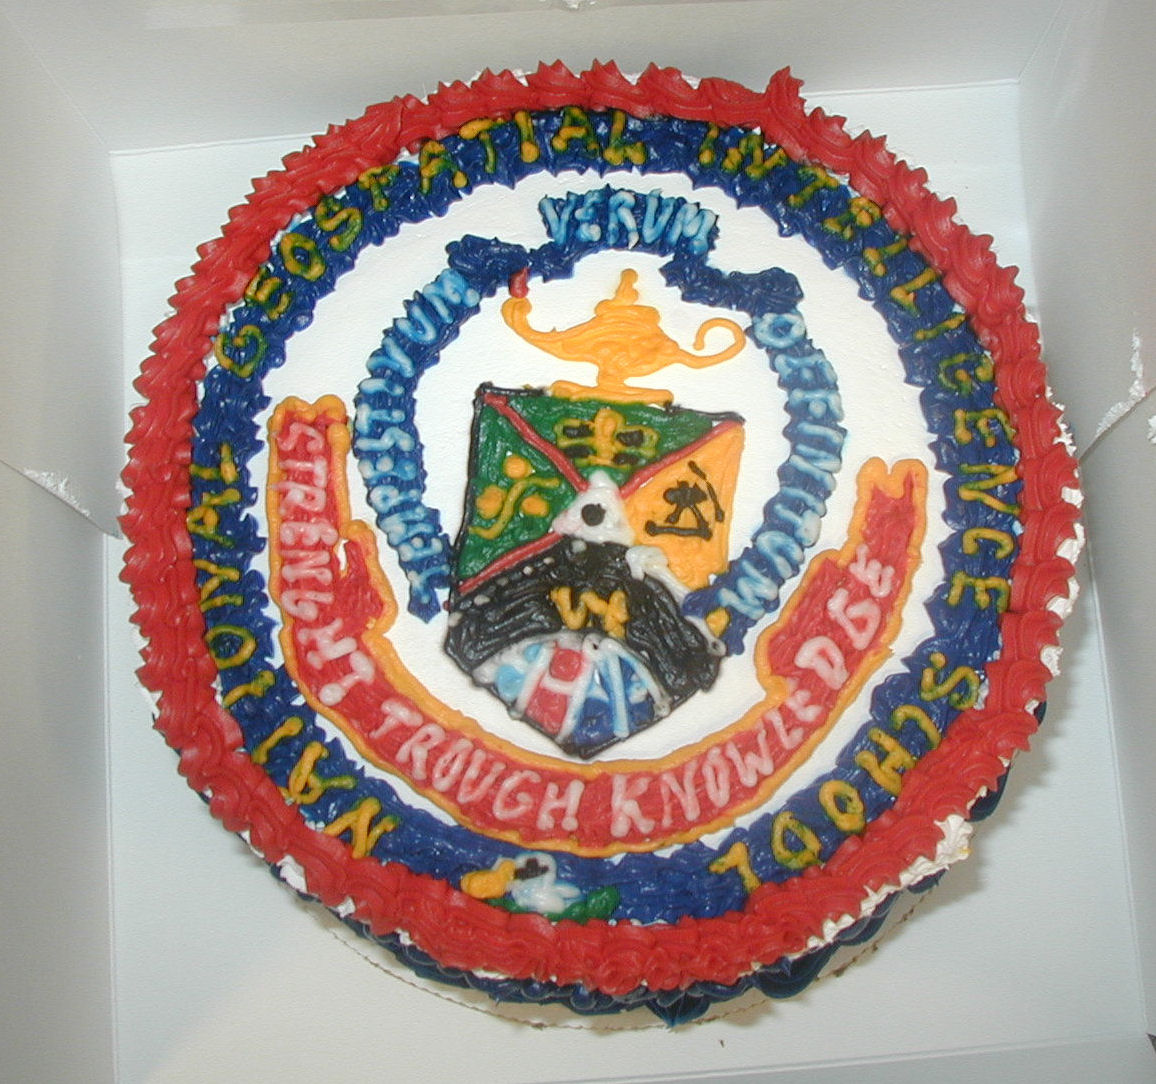 "This turned out to be kind of a farce as it is a picture of a cake at one of our Biggest celebrations- the school motto was ""Strength through Knowledge"" and the cake folks screwed up both words - Tasted a lot better then it looked."